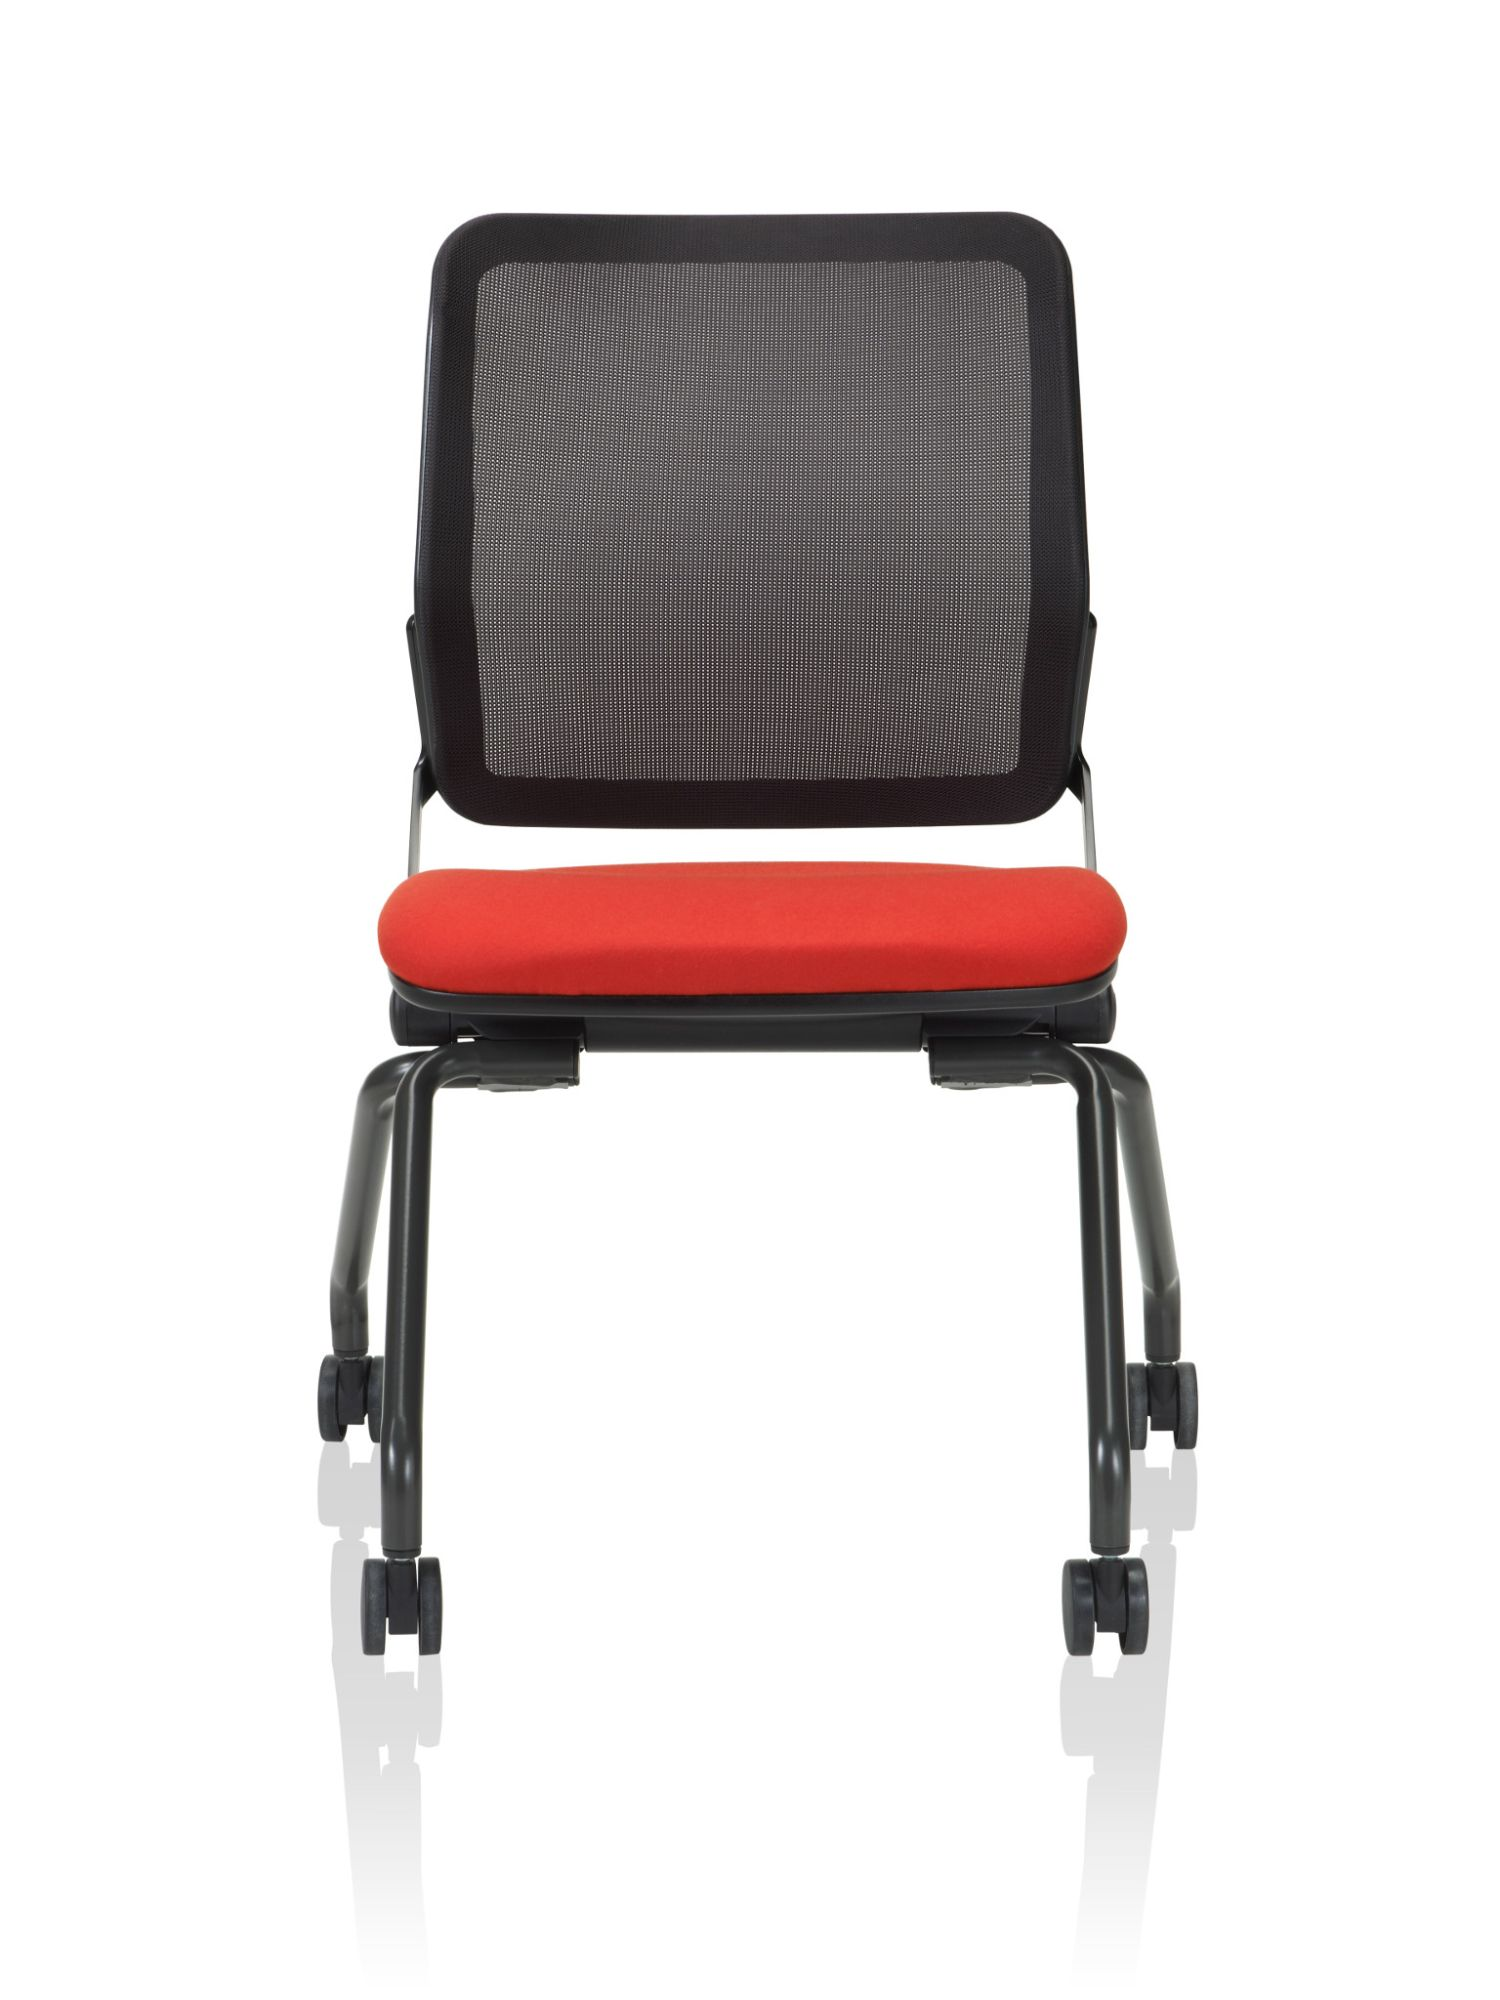 ki torsion air chair front profile